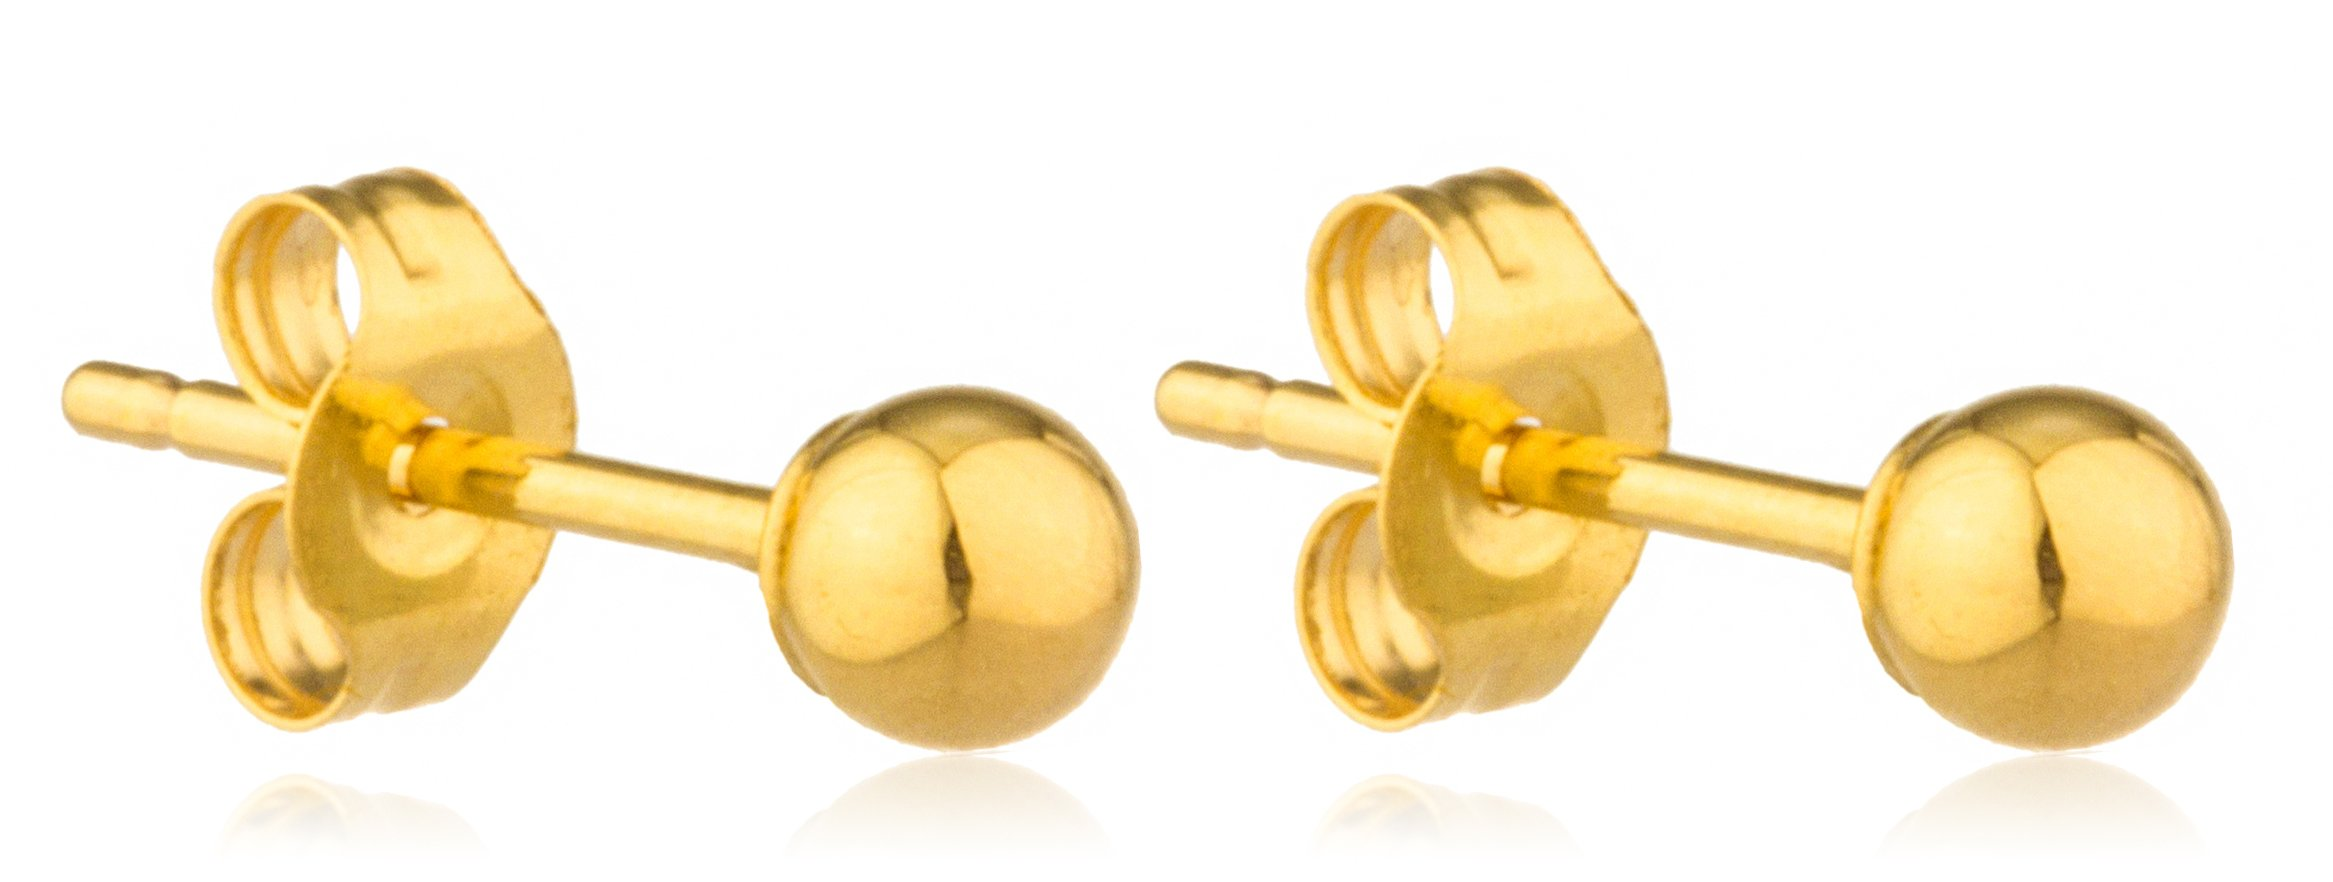 14k Yellow Gold Classic Ball Earring Studs with 14k Push Backs -2mm to 10mm Available (3 Millimeters) (GO-443 Metal Back)